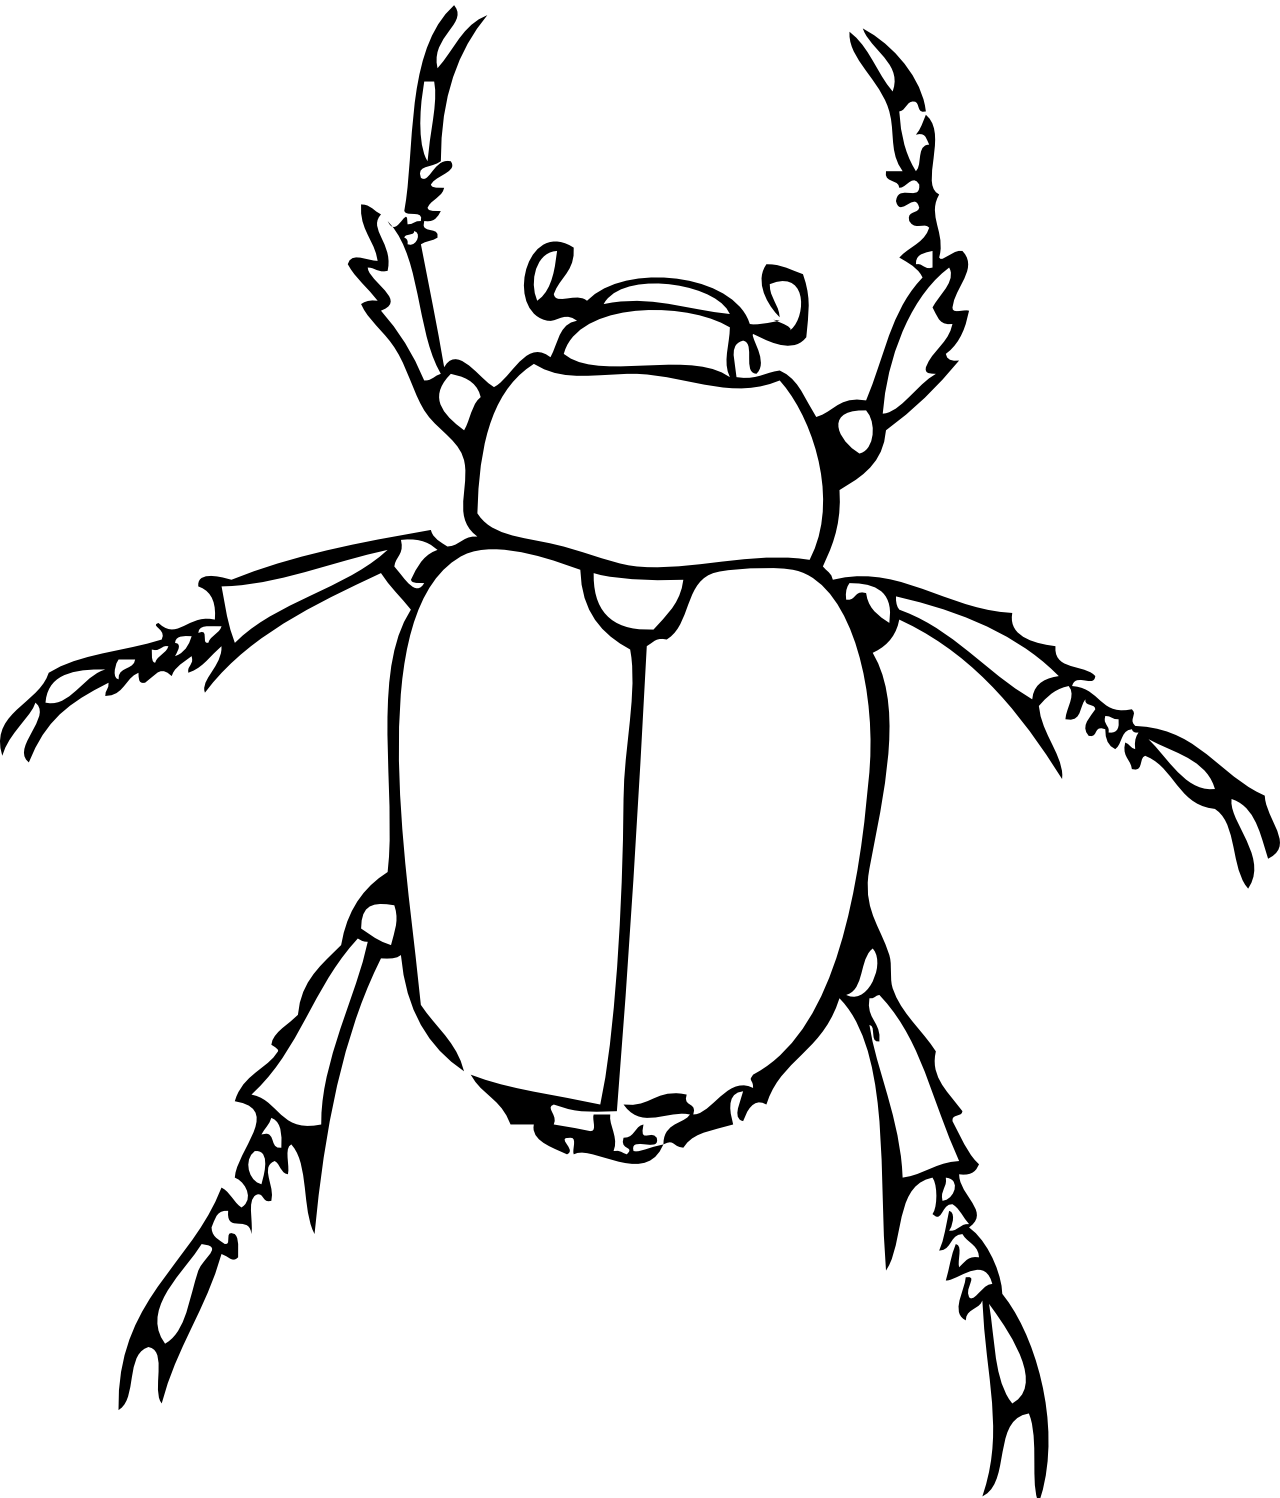 Beetles clipart #6, Download drawings